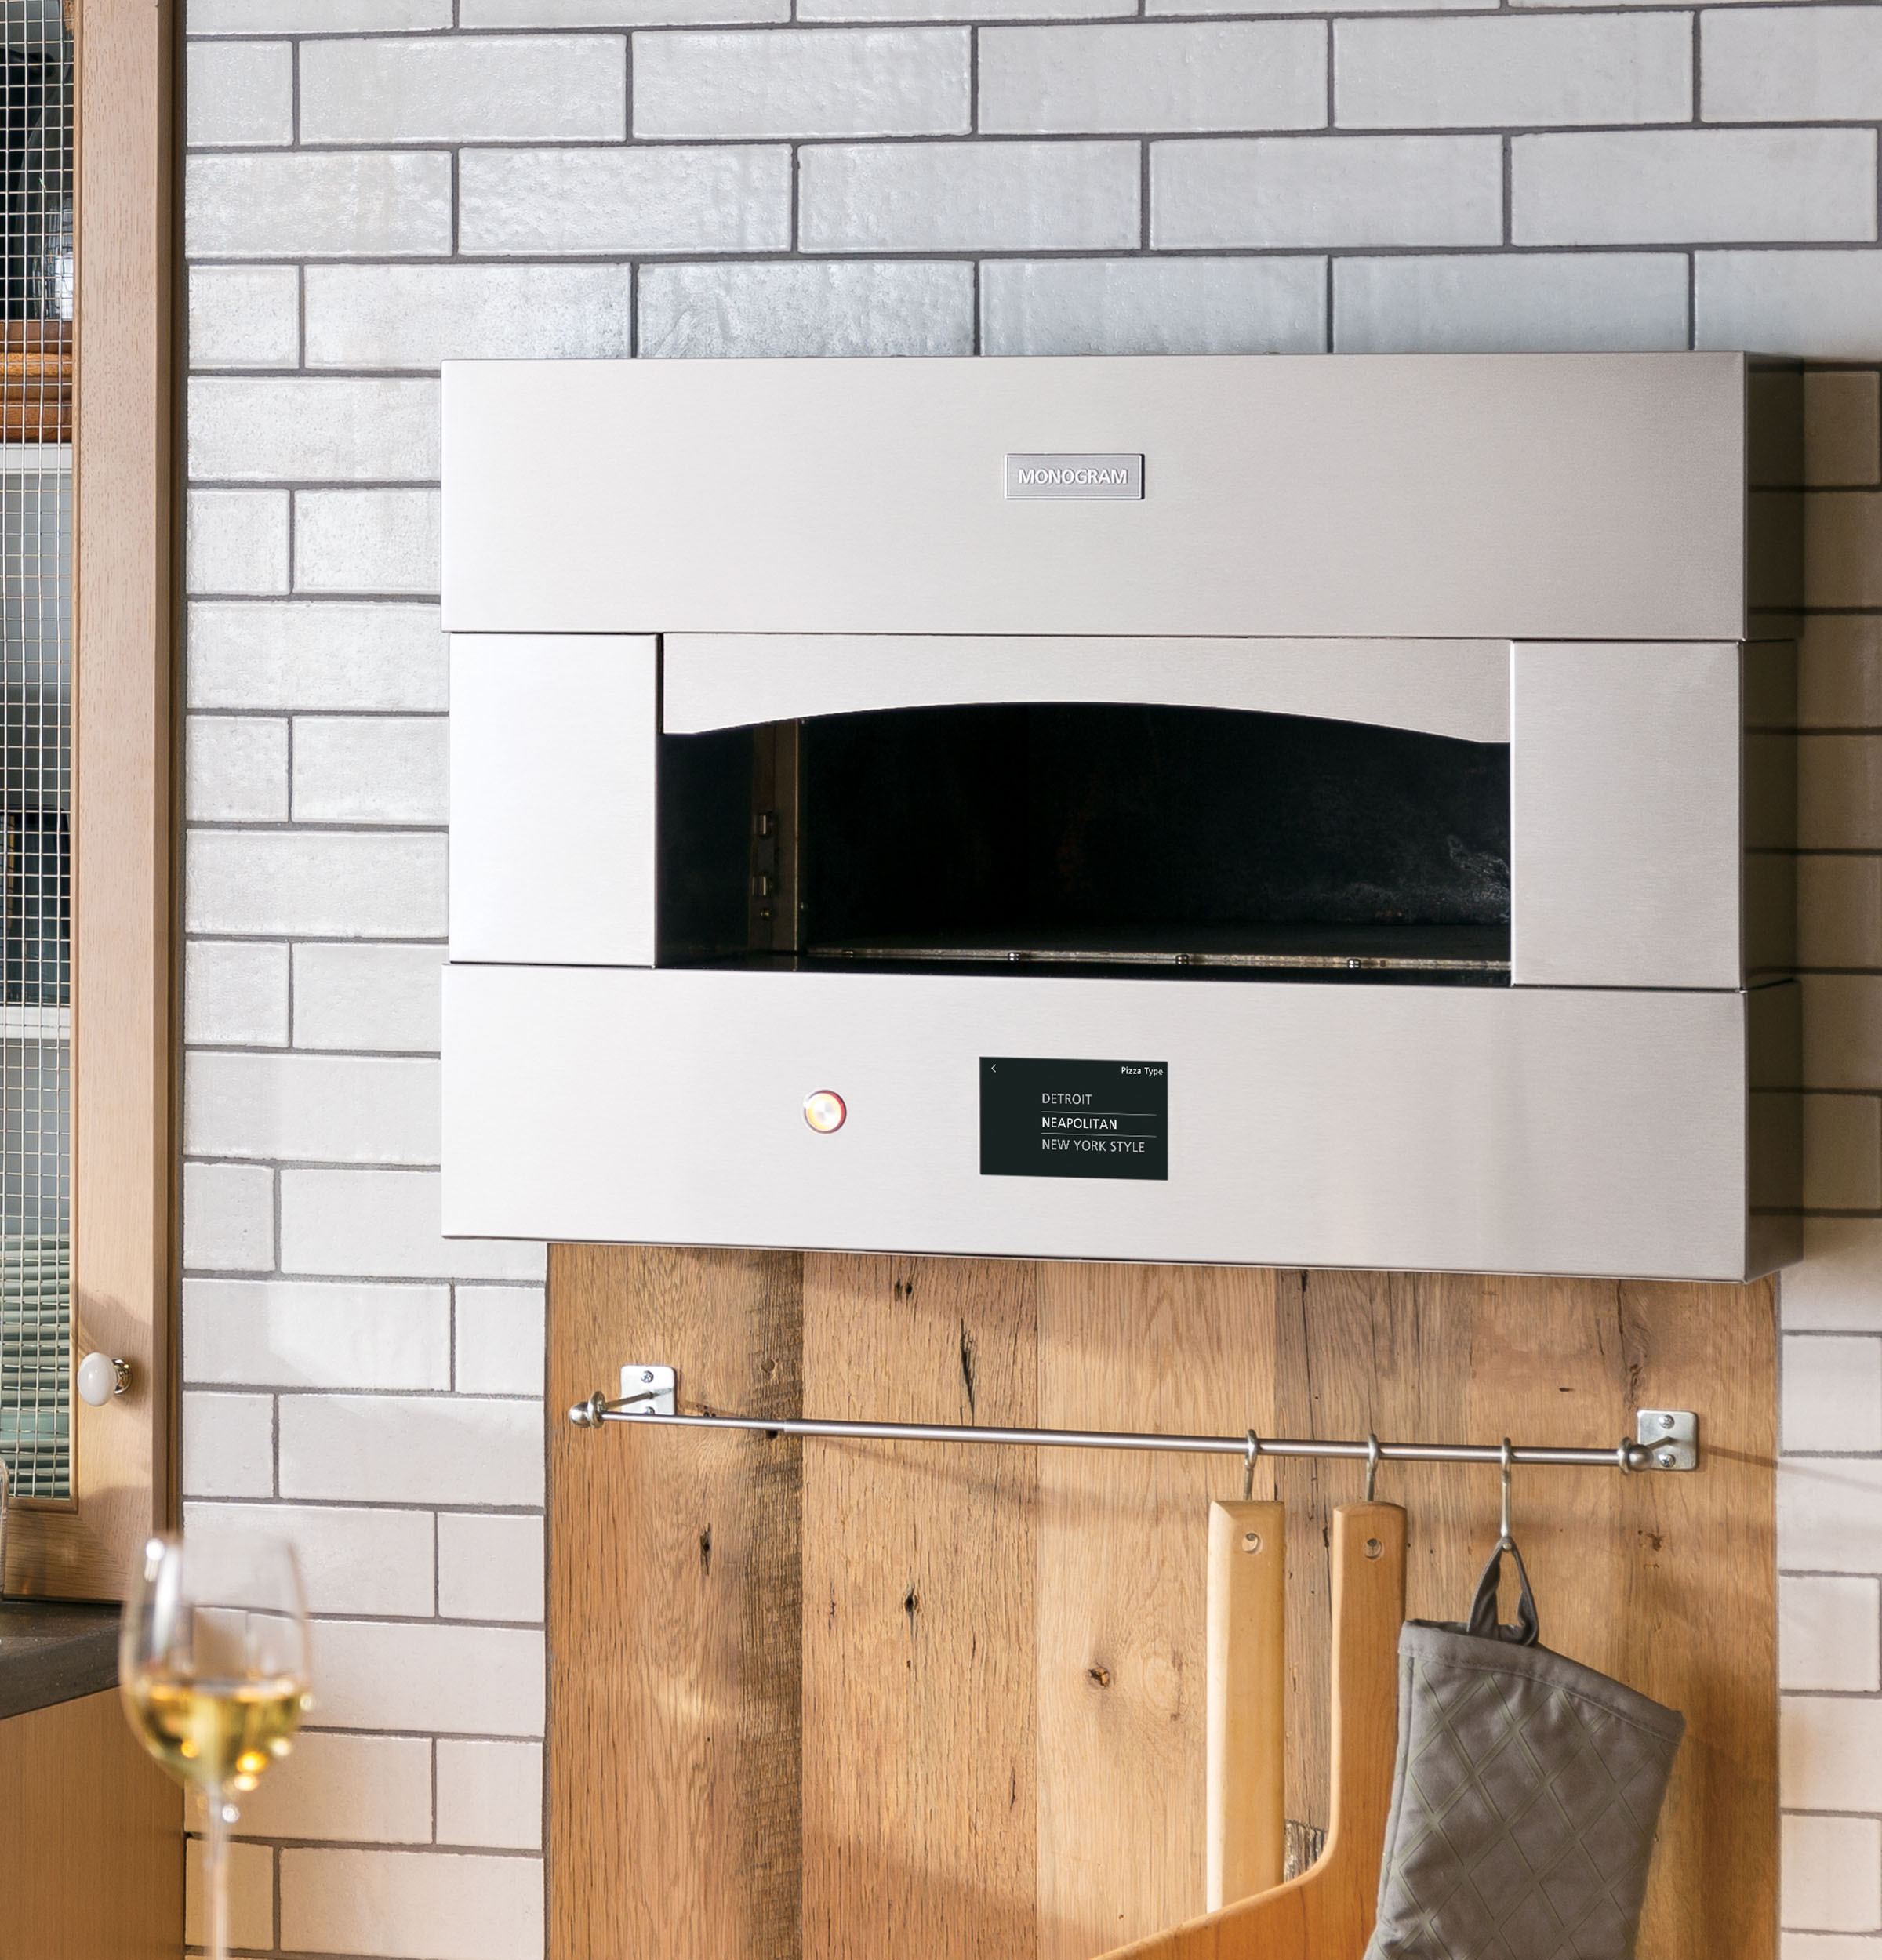 "Hearth Oven: Monogram 30"" Smart Hearth Oven"